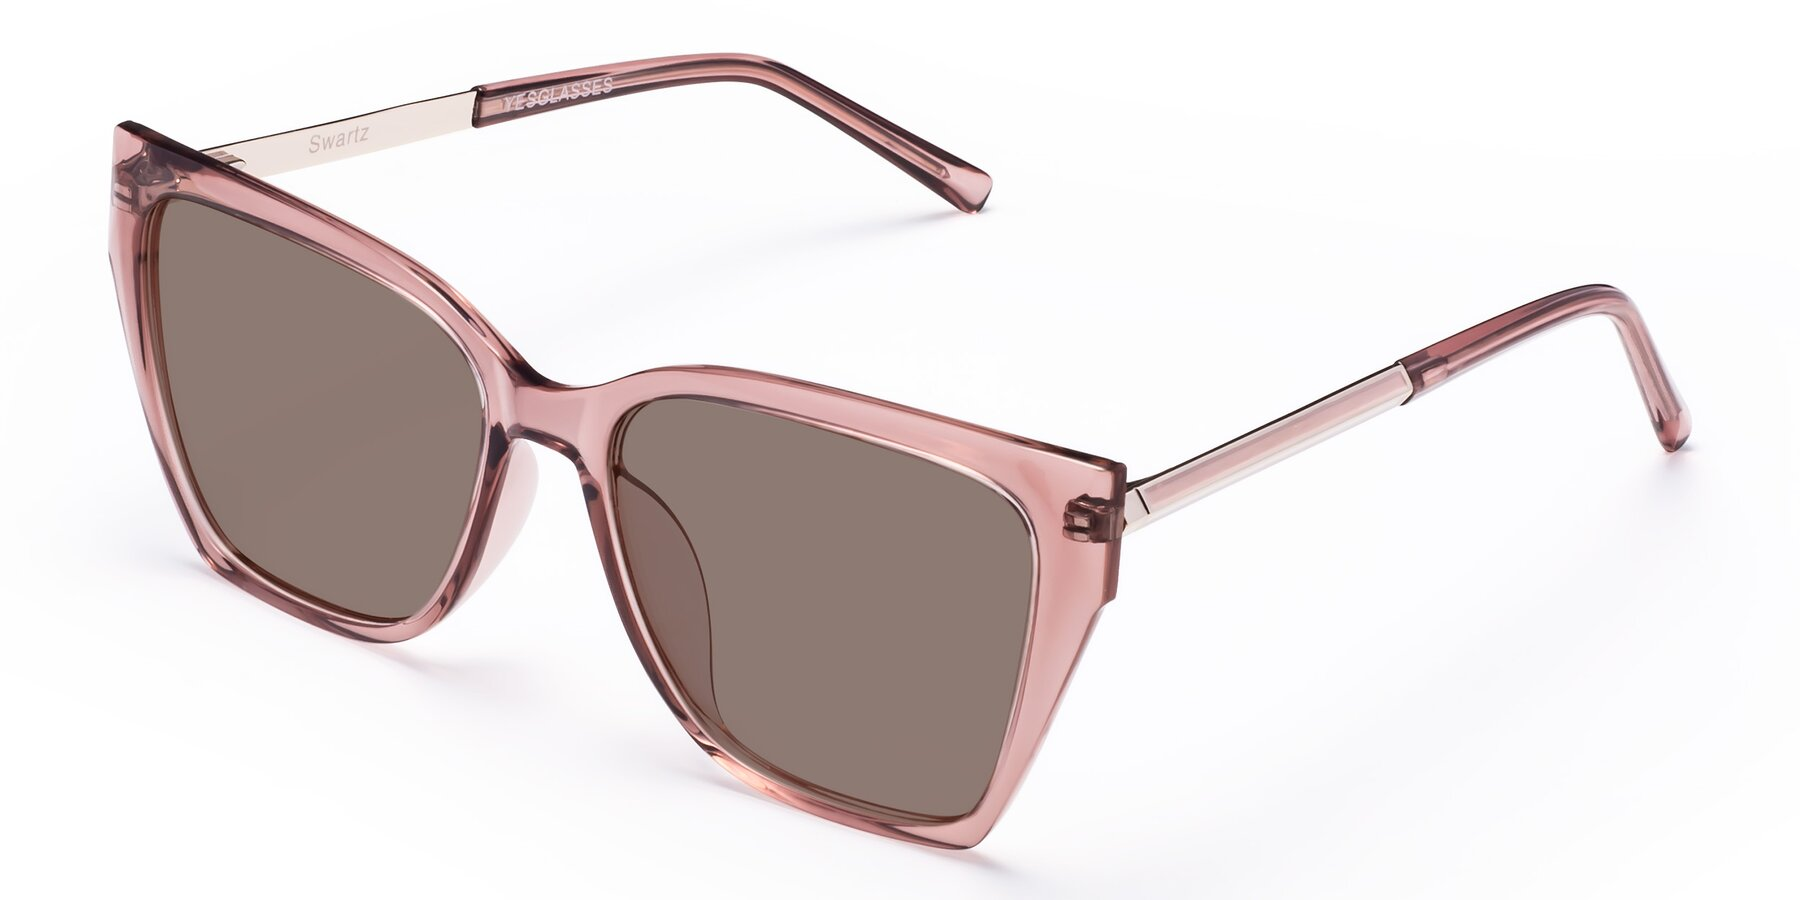 Angle of Swartz in Grape with Medium Brown Tinted Lenses